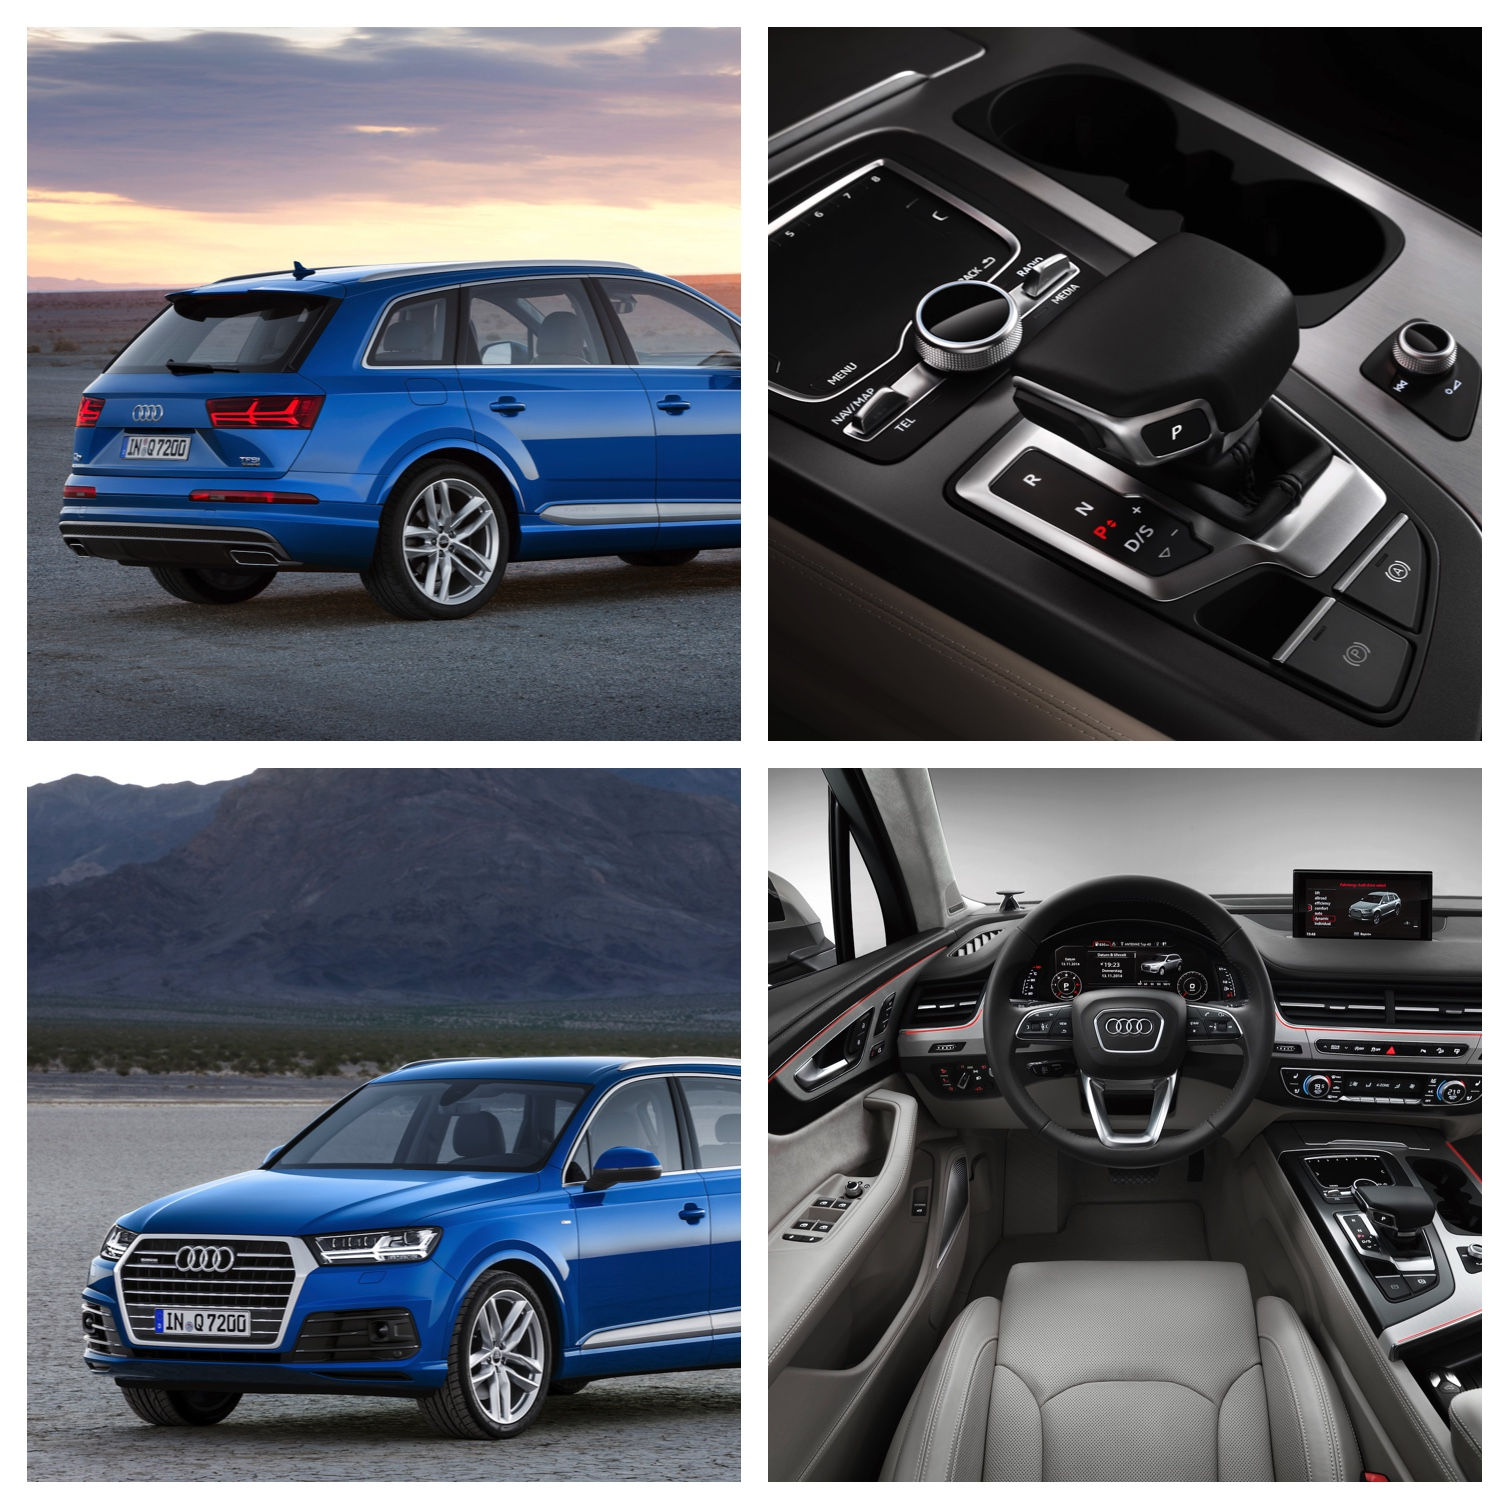 New Second Generation Audi Q7 | Android Tablet with Quattro